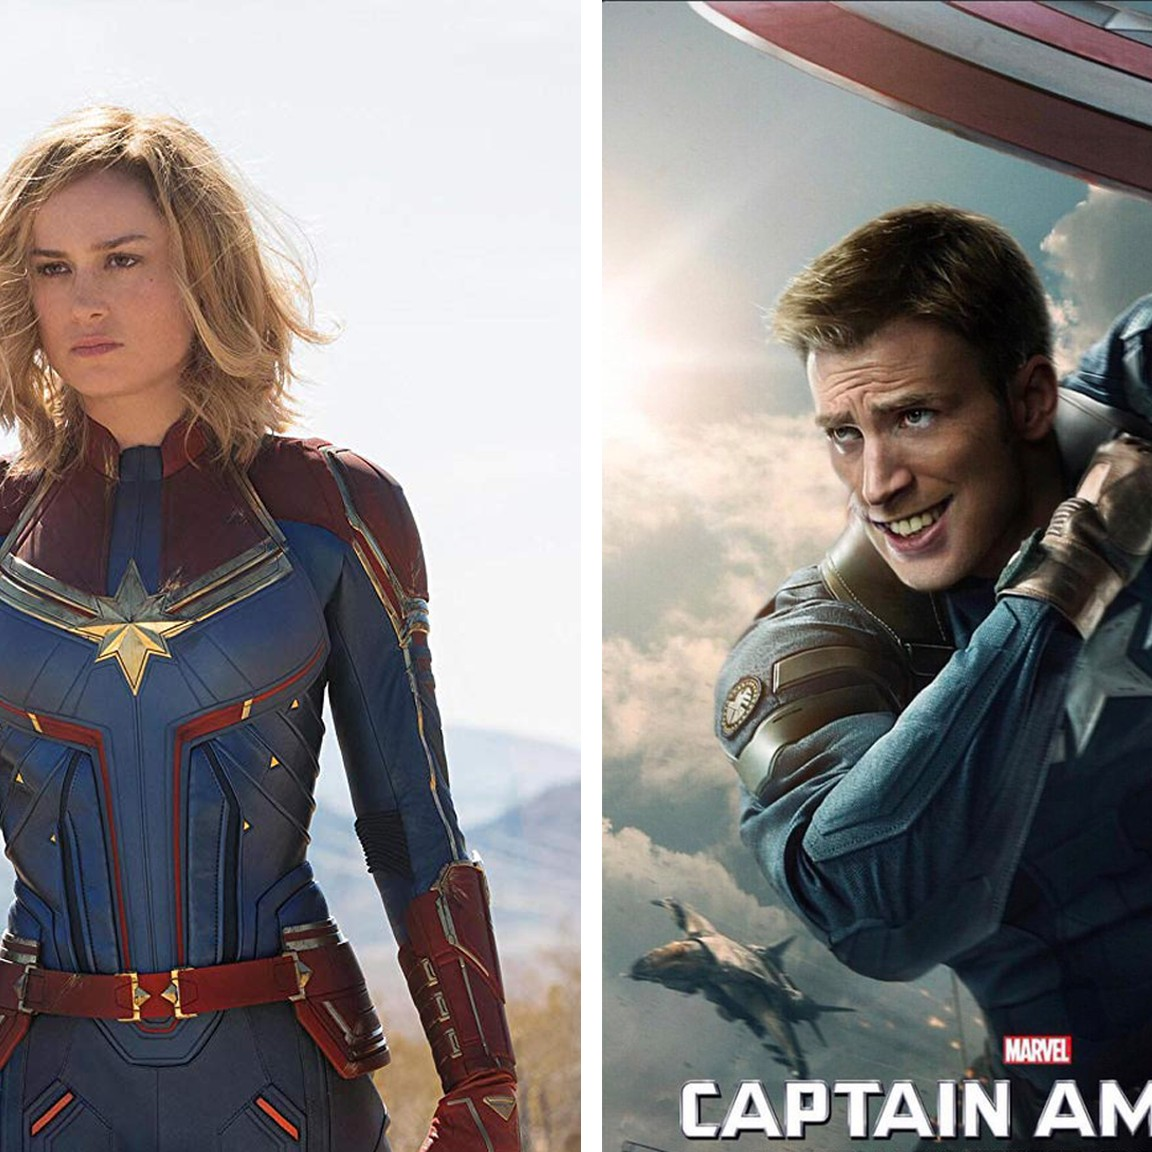 Brie Larson Was Told To Smile In Captain Marvel So She Put Smiles Onto Marvel Dudes Carol danvers army costume carol danvers pilot costume carol danvers / captain marvel agent costume carol danvers starforce member the sunglasses that brie larson wears in captain marvel for her role as the pilot carol danvers in the us air force are gold aviator sunglasses with. brie larson was told to smile in